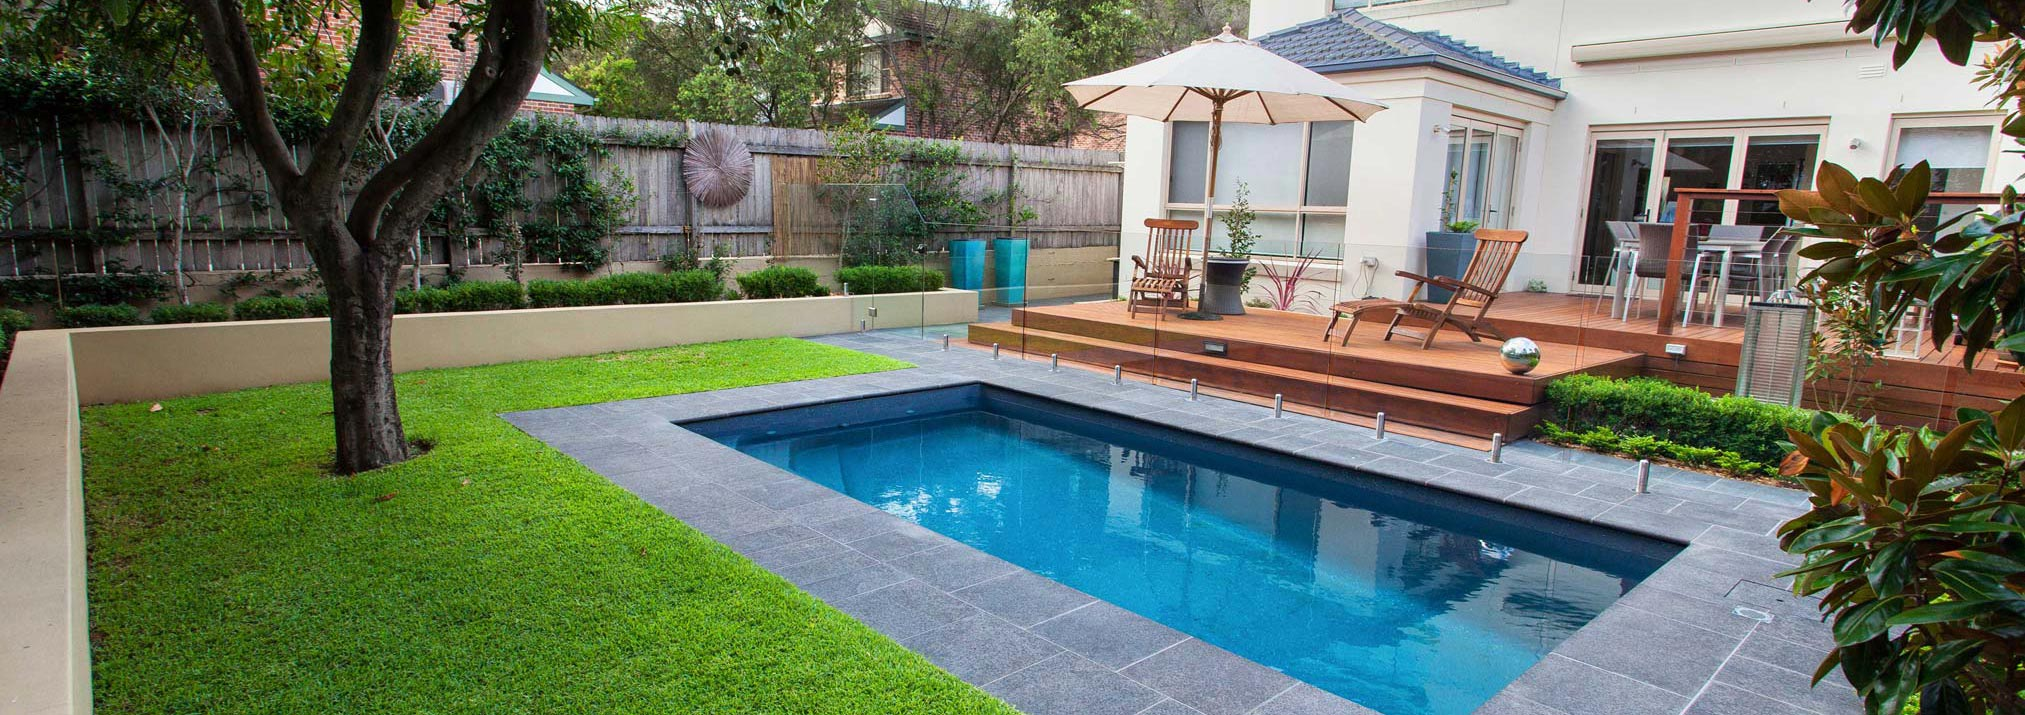 sovereign fibreglass swimming pool